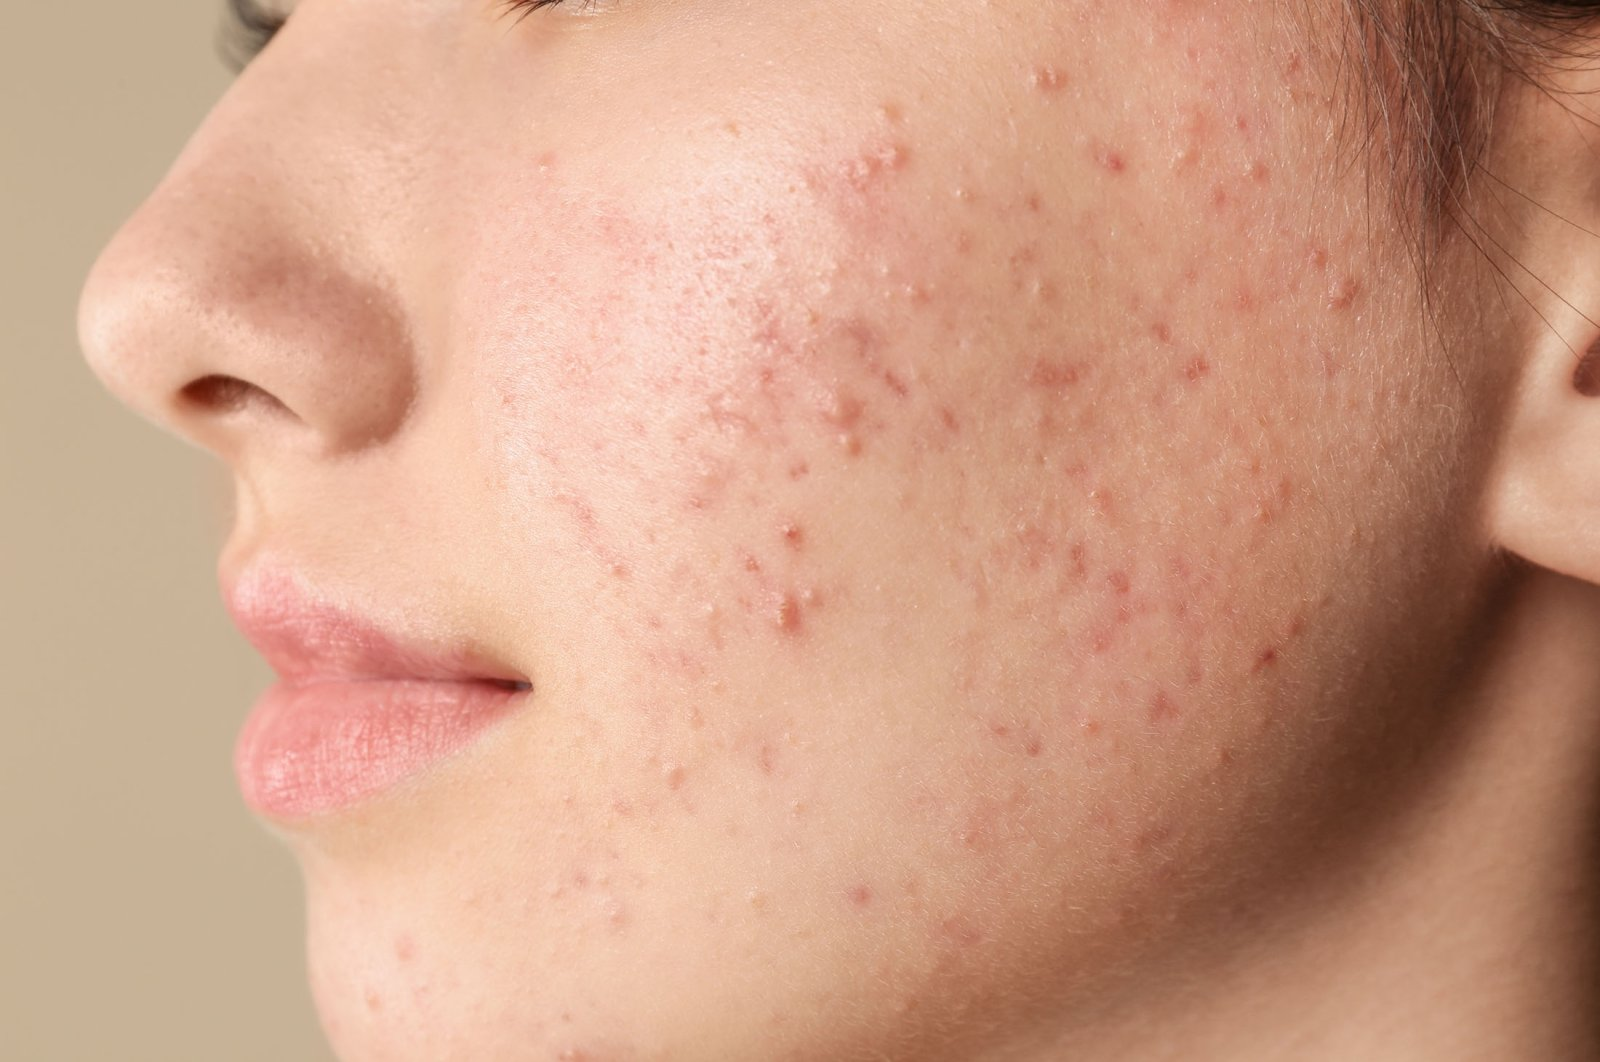 One expert believes persistent adult acne could be indirectly caused by climate change. (Shutterstock Photo)